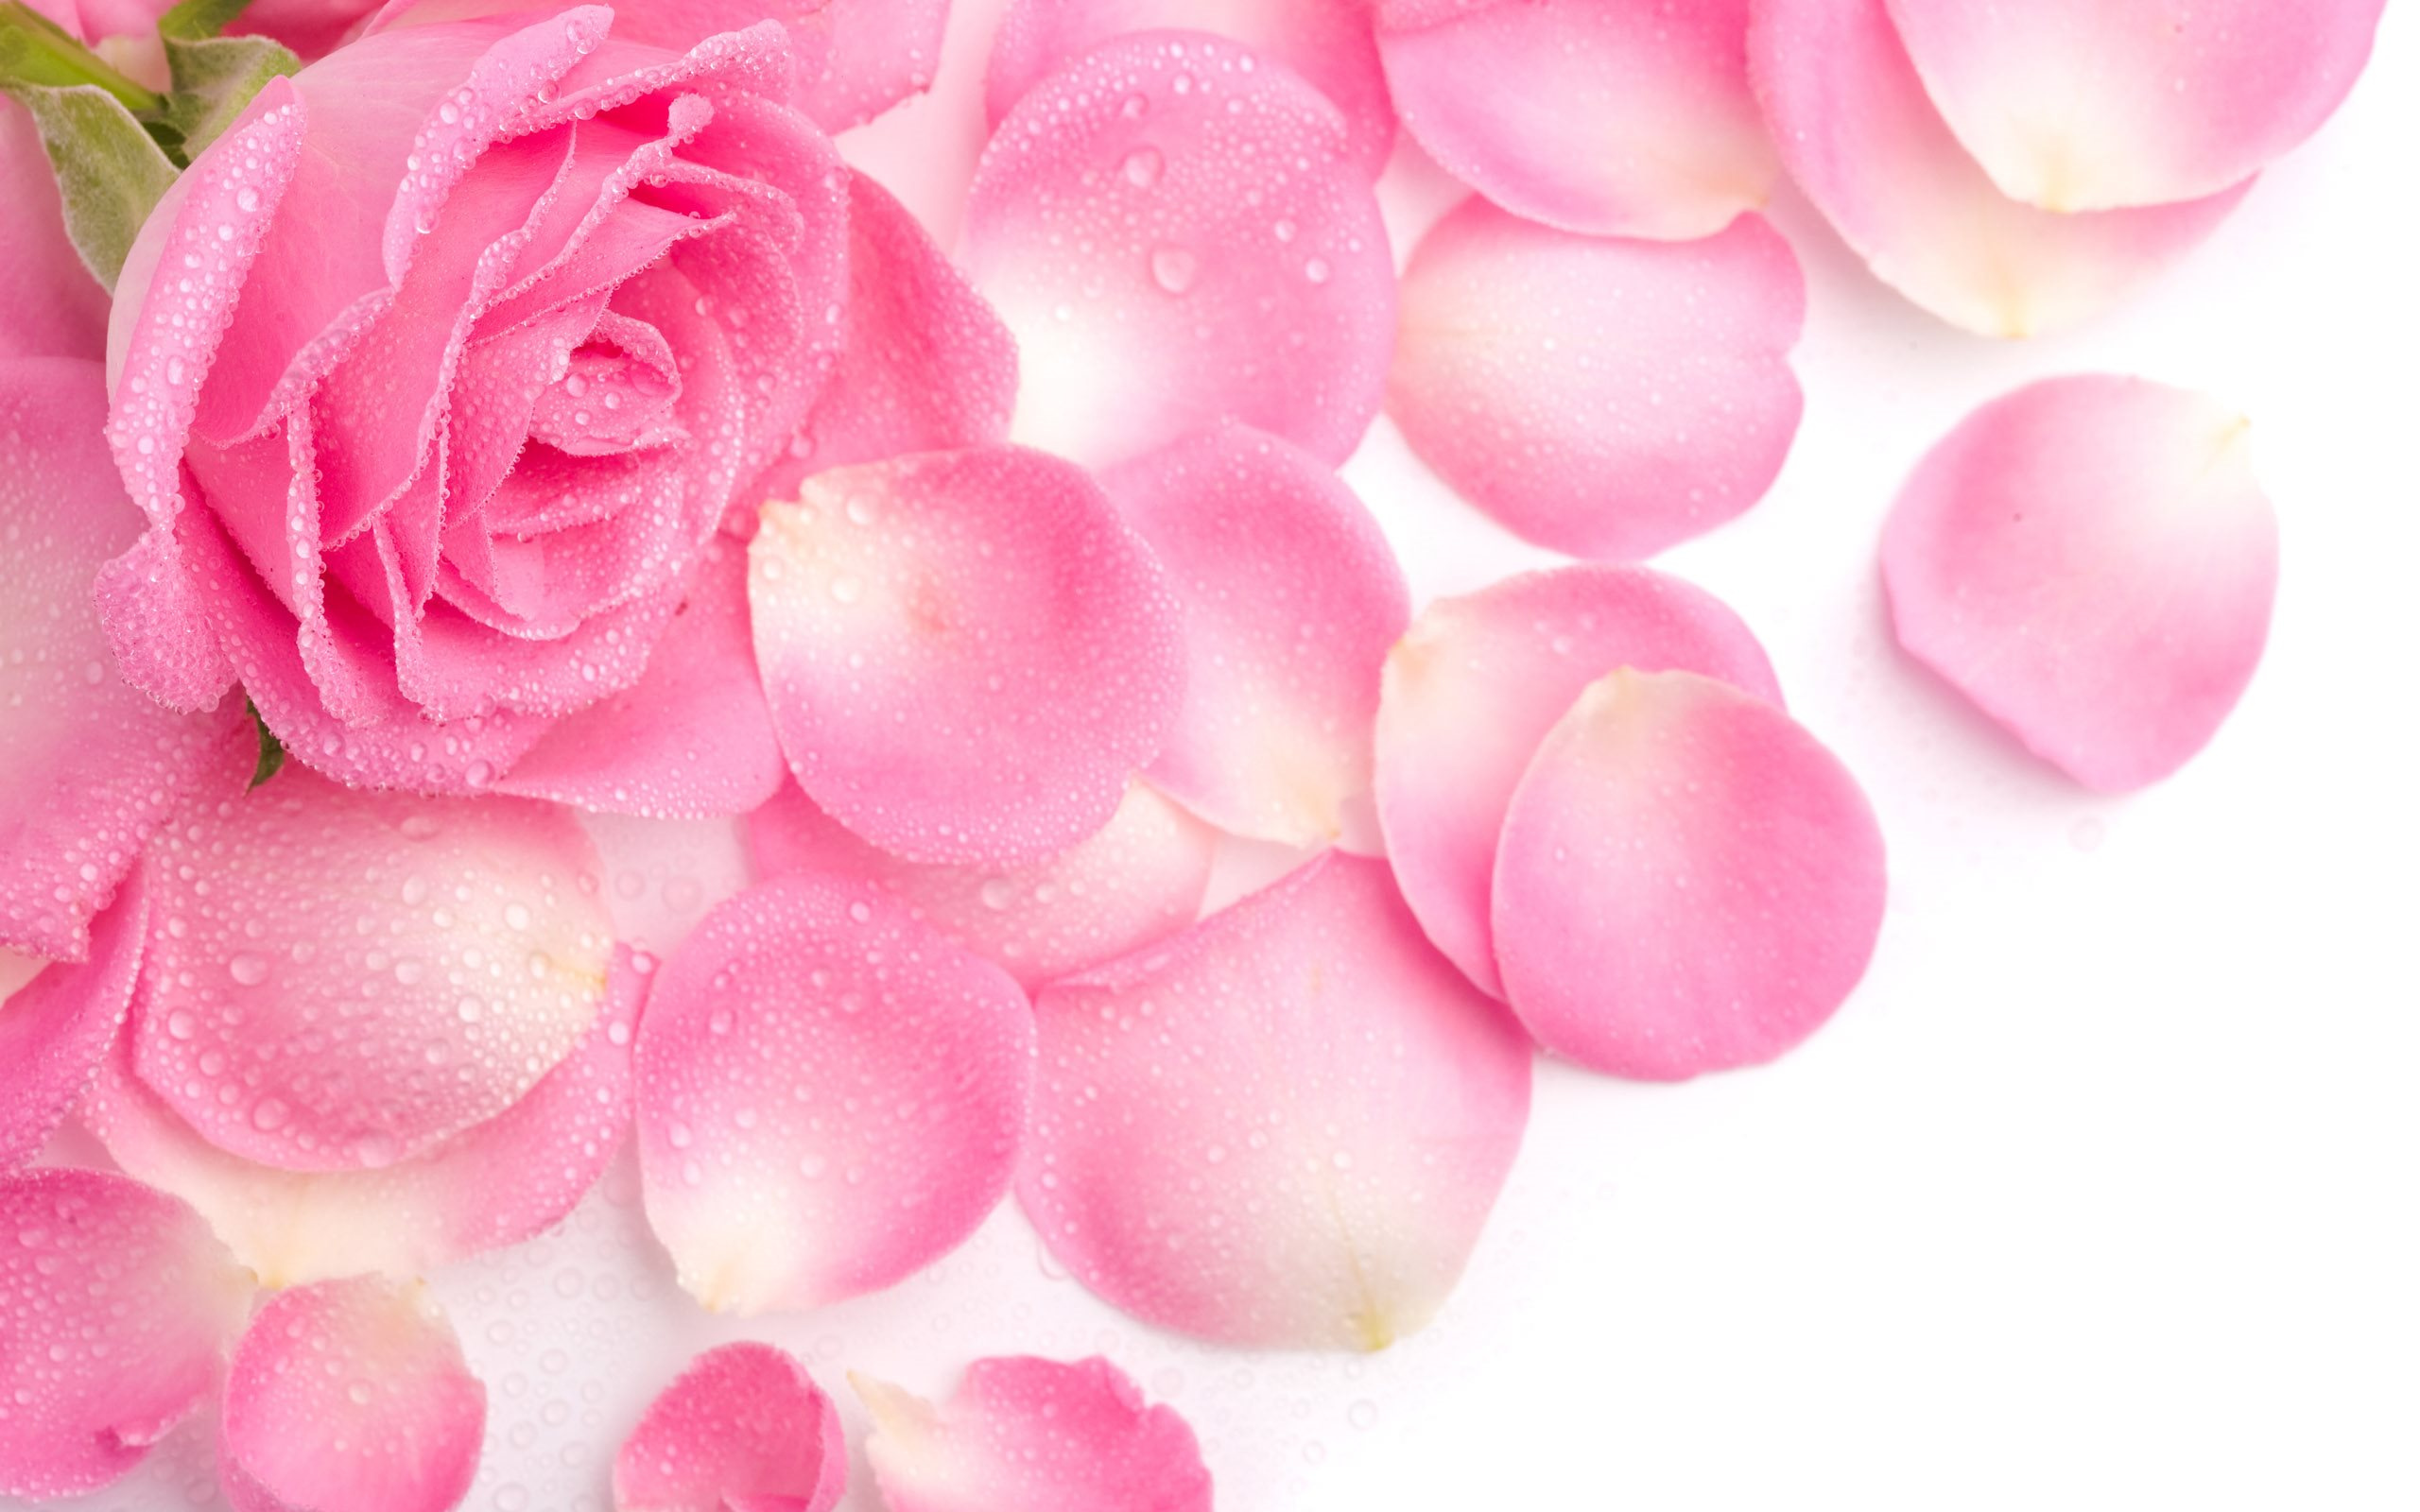 Pink Beautiful Rose Petals Wallpaper 2560x1600